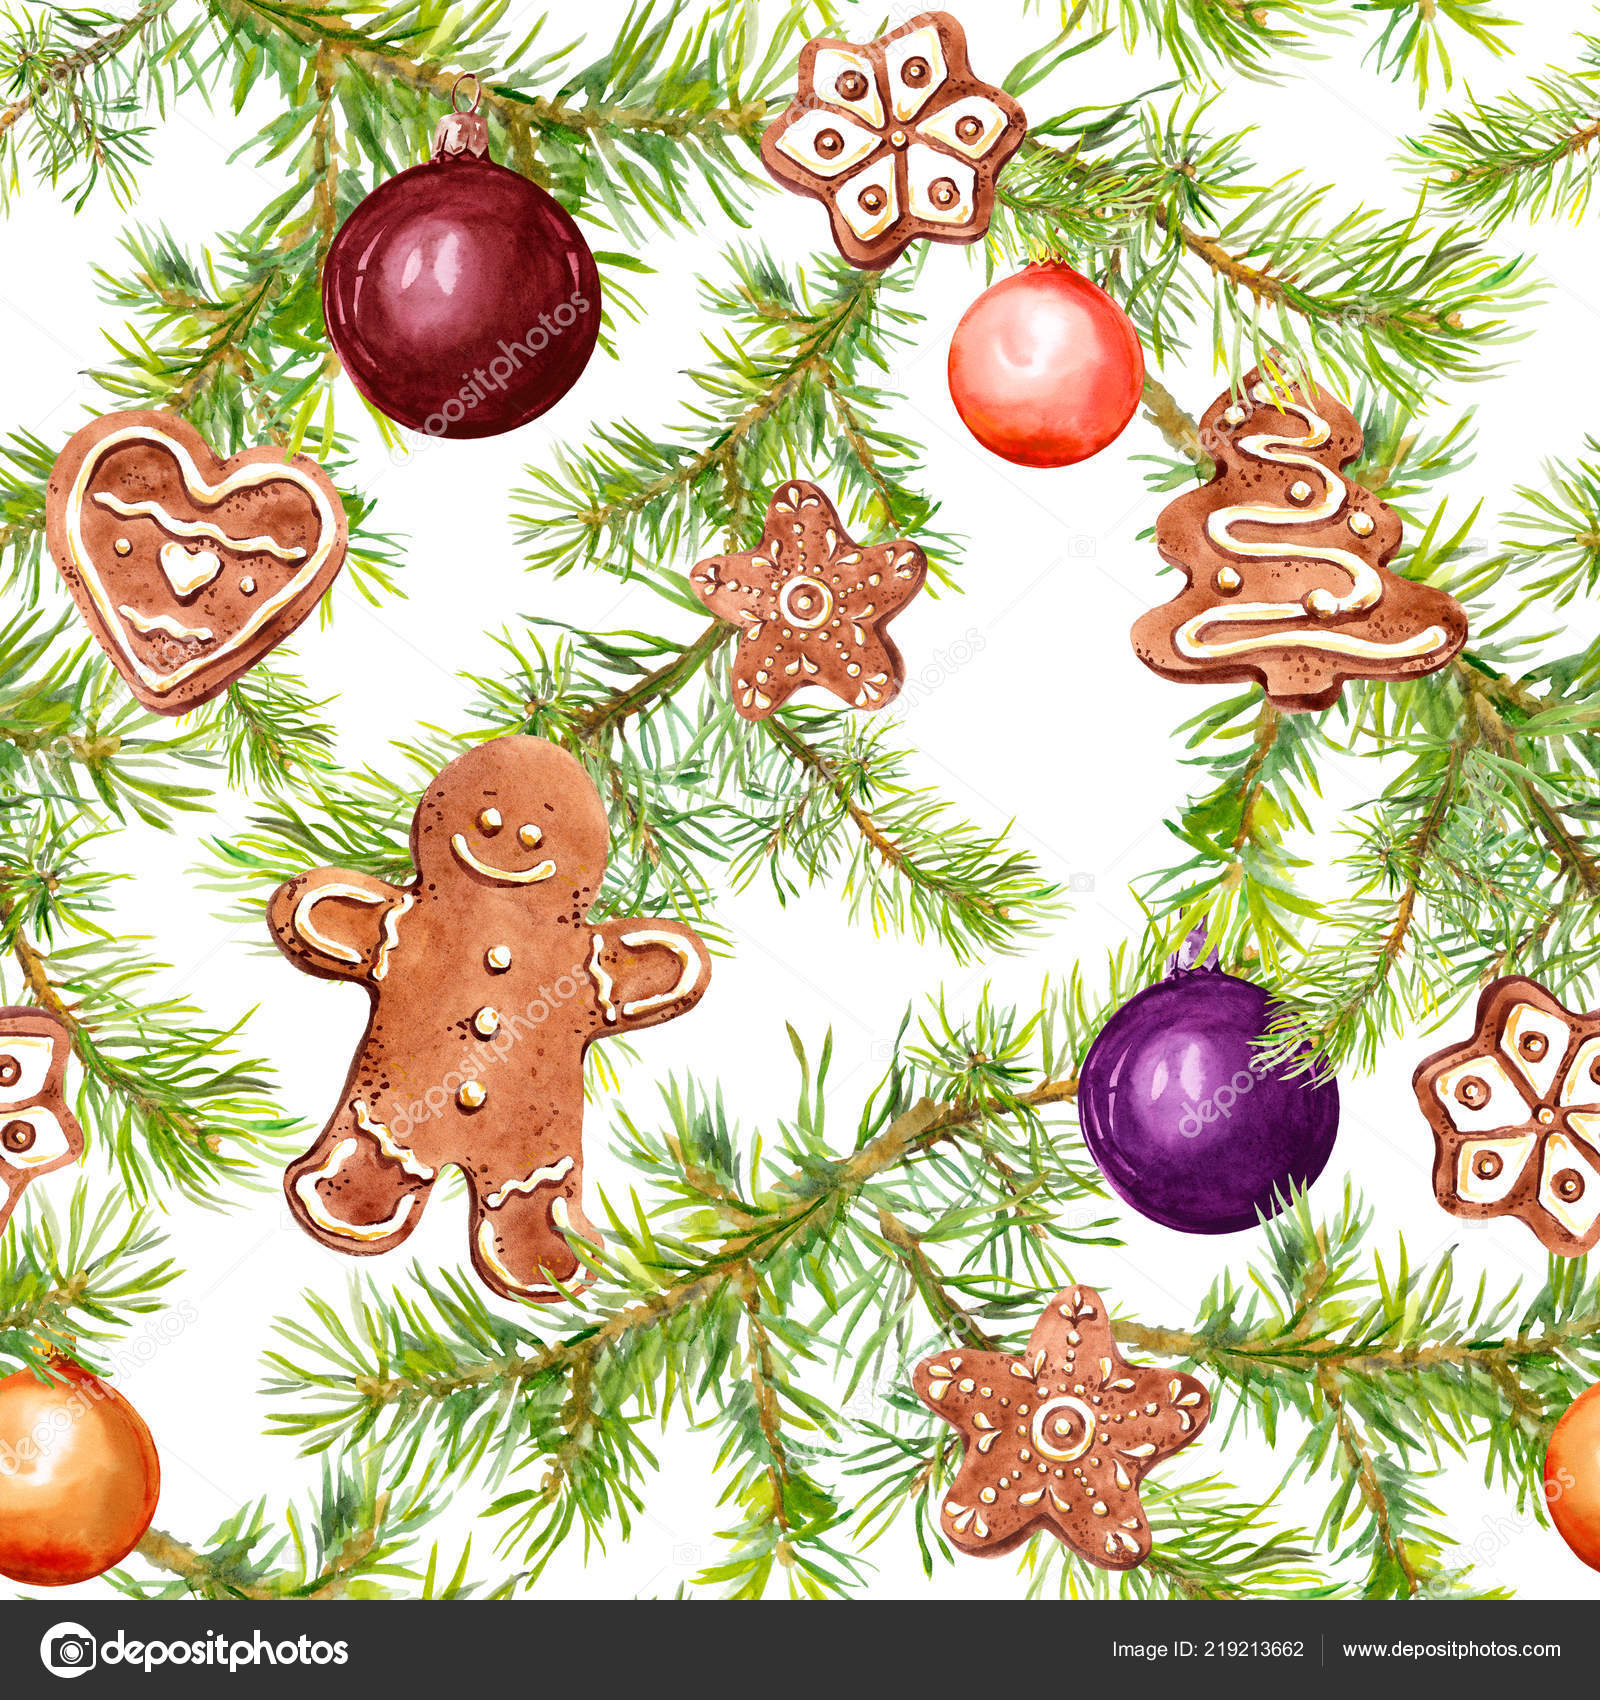 Christmas Baubles Gingerbread Conifer Tree Branches Seamless Pattern For Christmas Design Watercolor Stock Photo C Zzzorikk 219213662